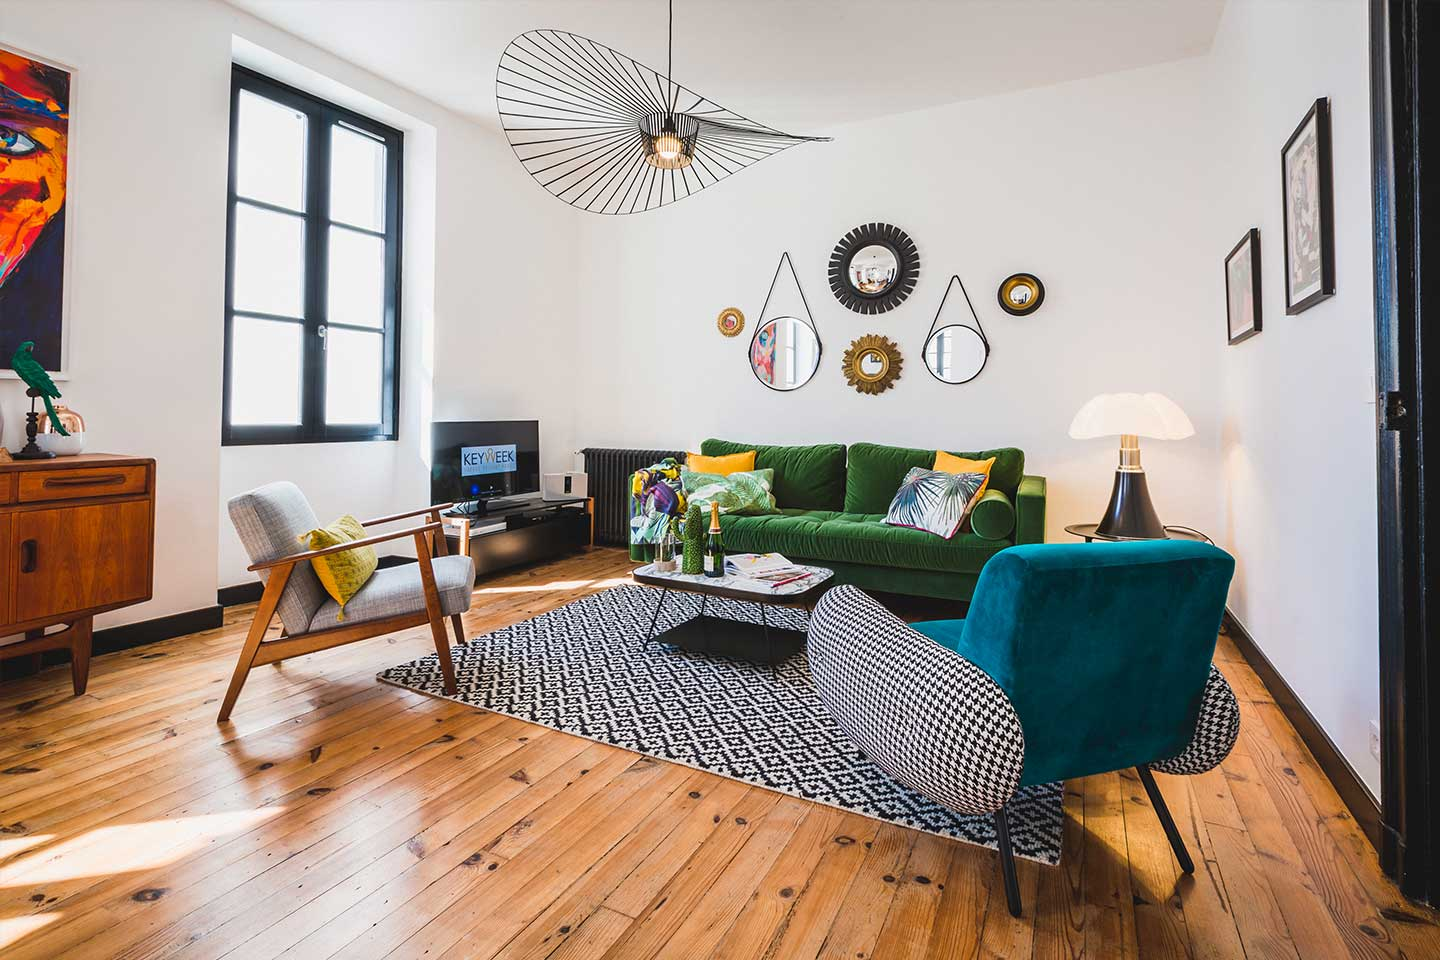 LONDON AVENUE Un superbe appartement Vintage en plein coeur de Biarritz